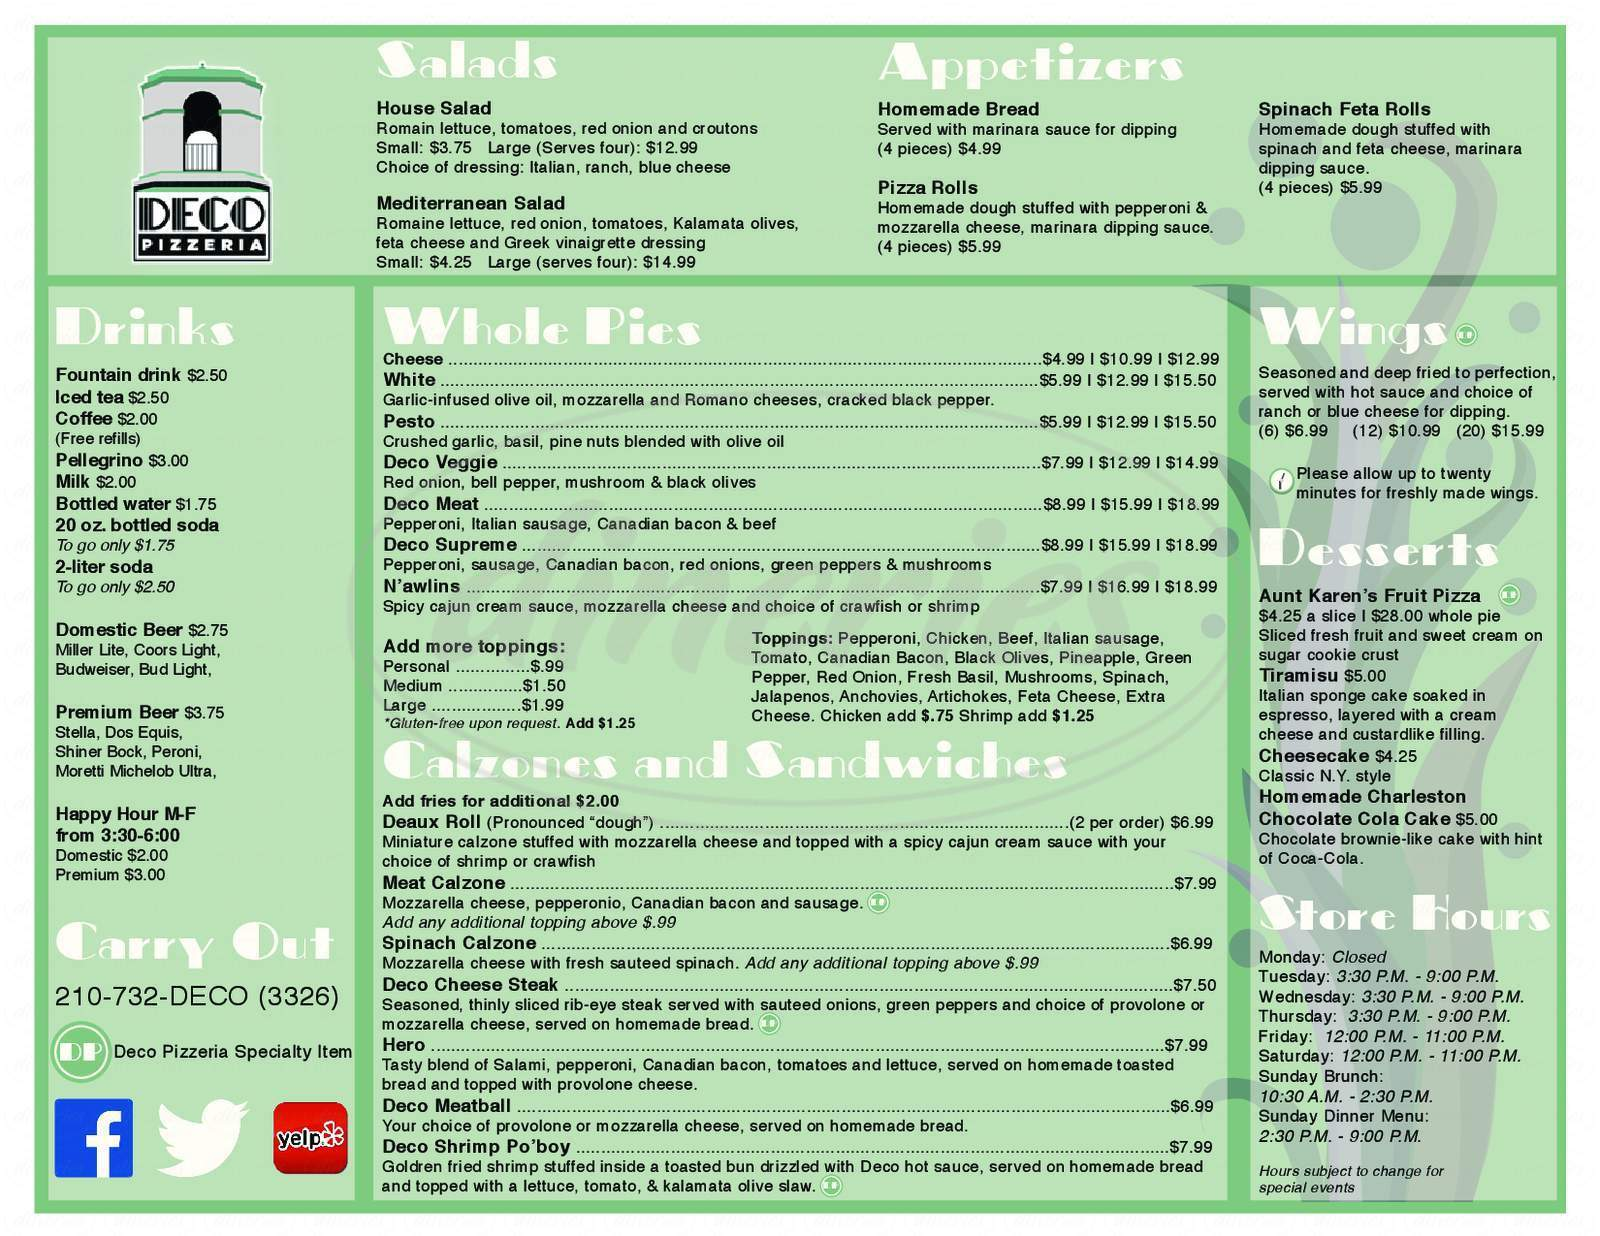 menu for Deco Pizzeria